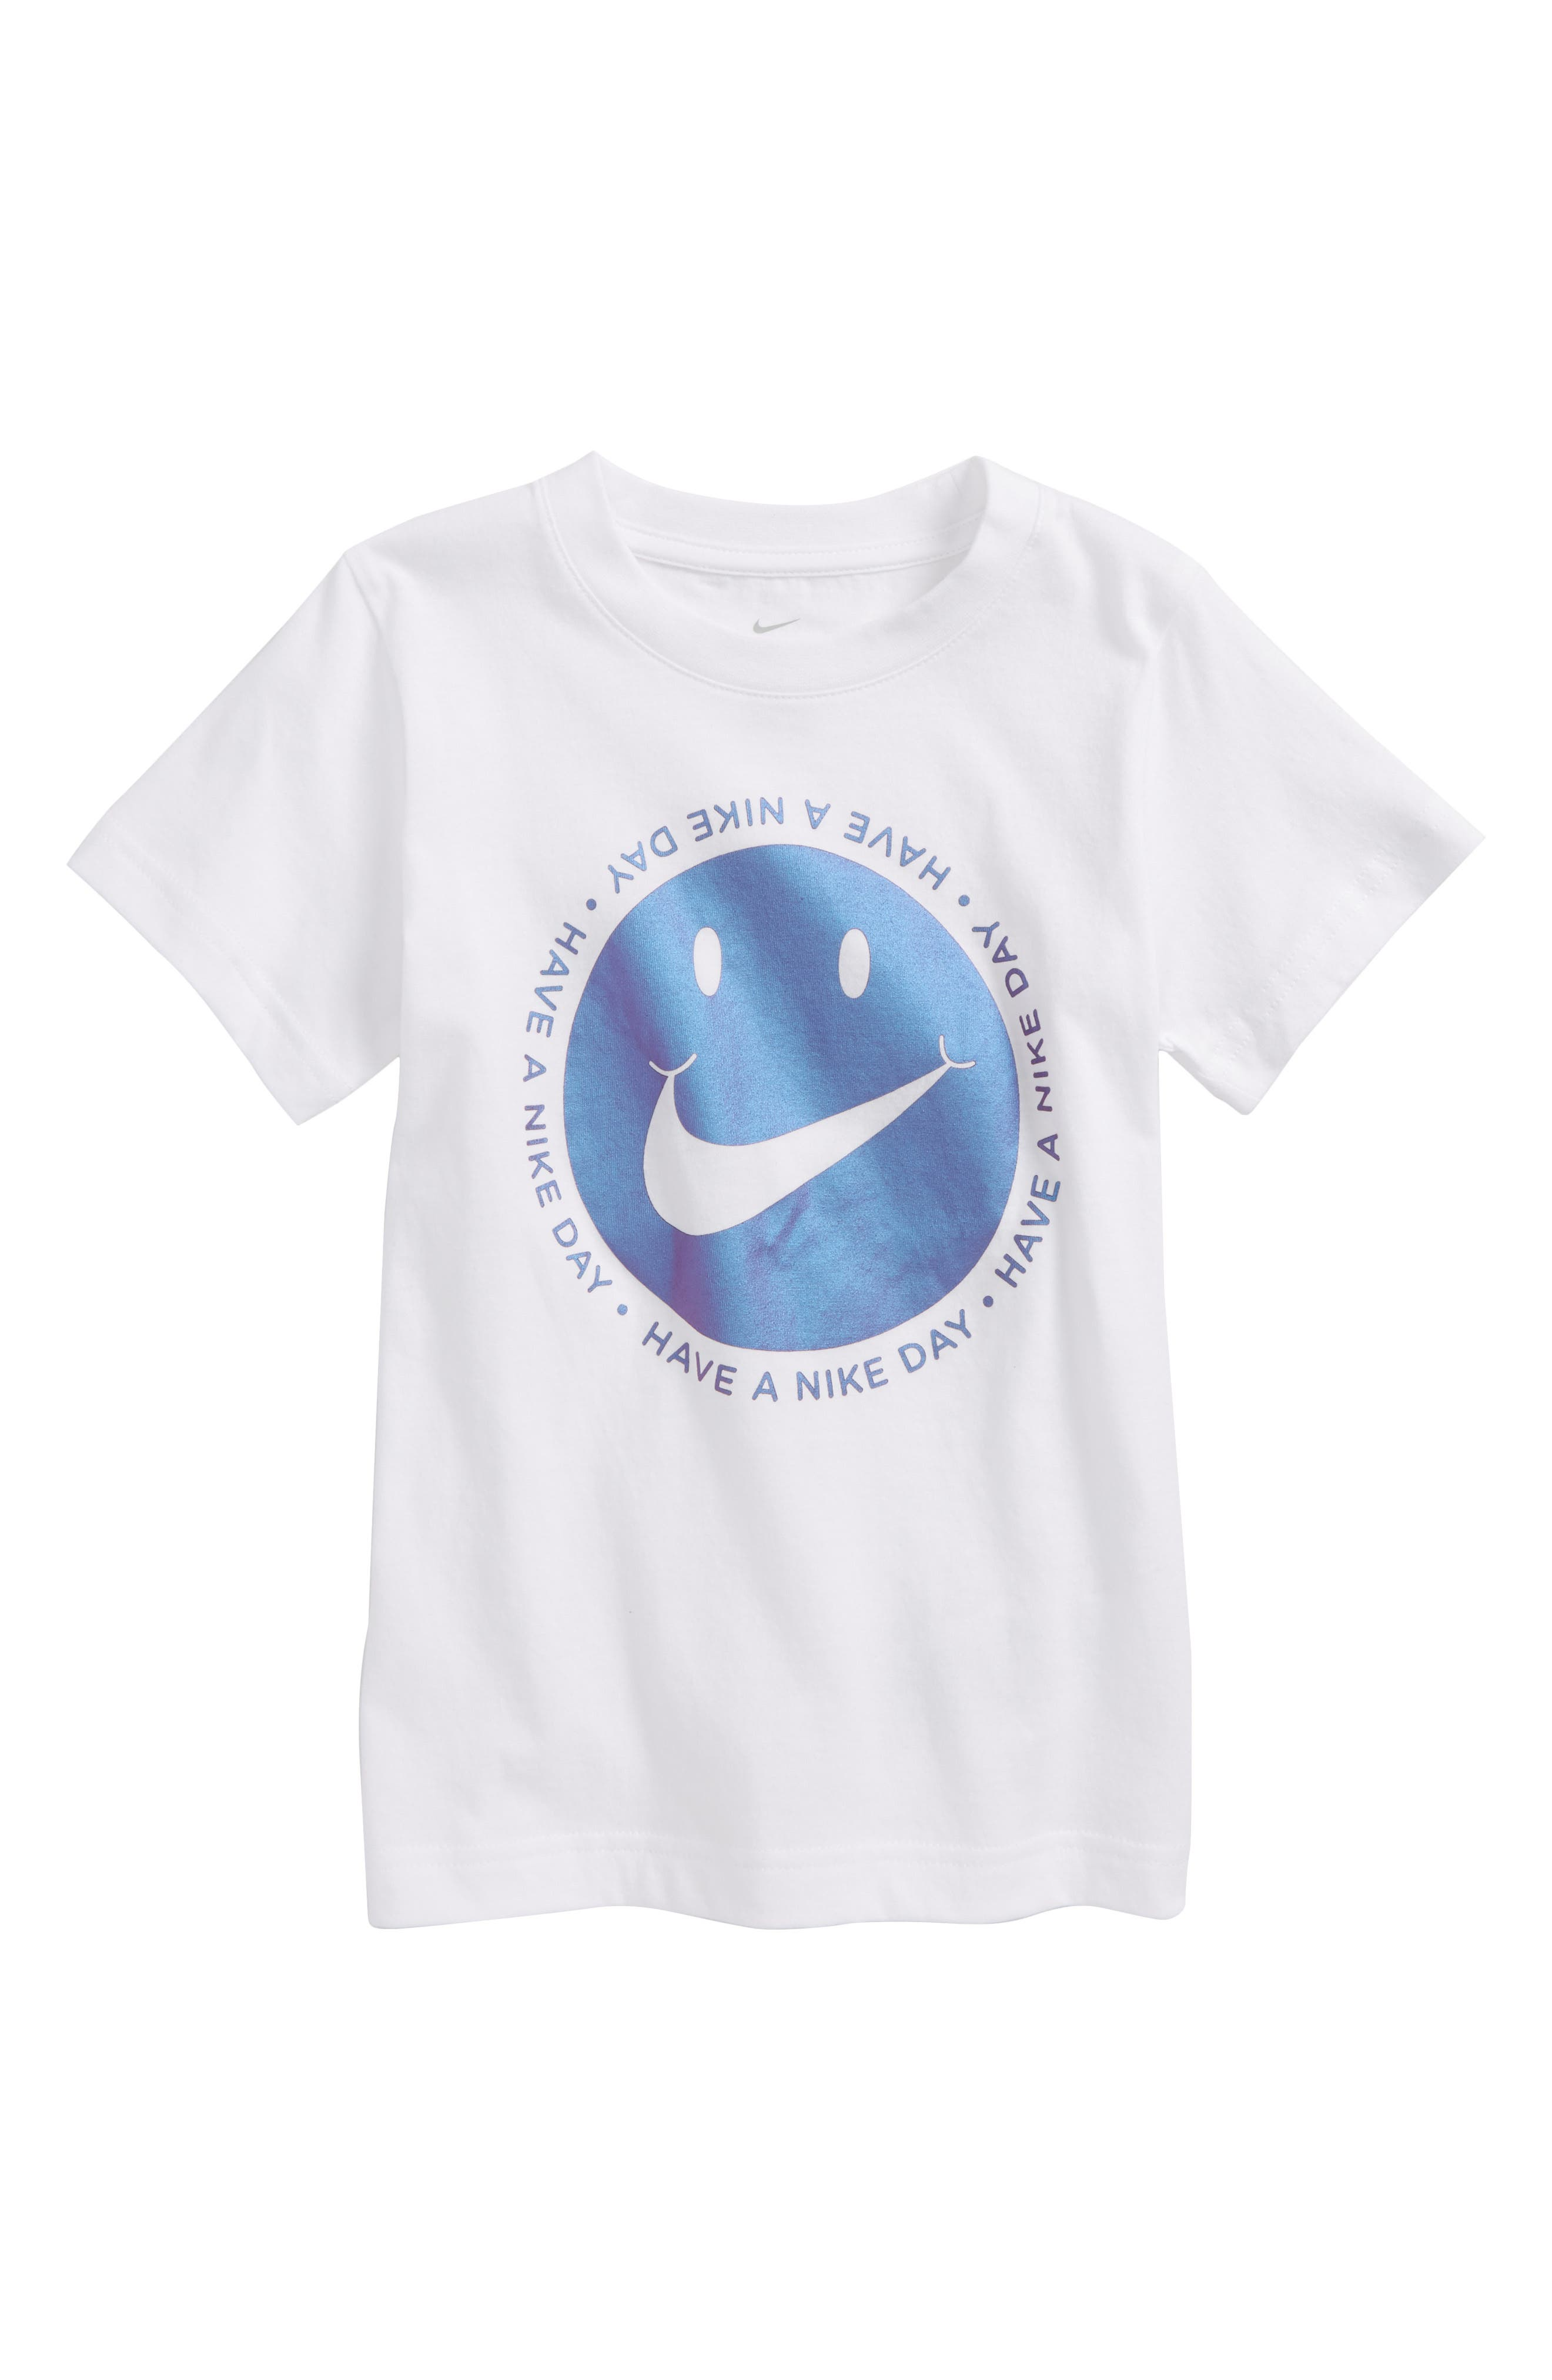 DNA T-Shirt,                         Main,                         color, White